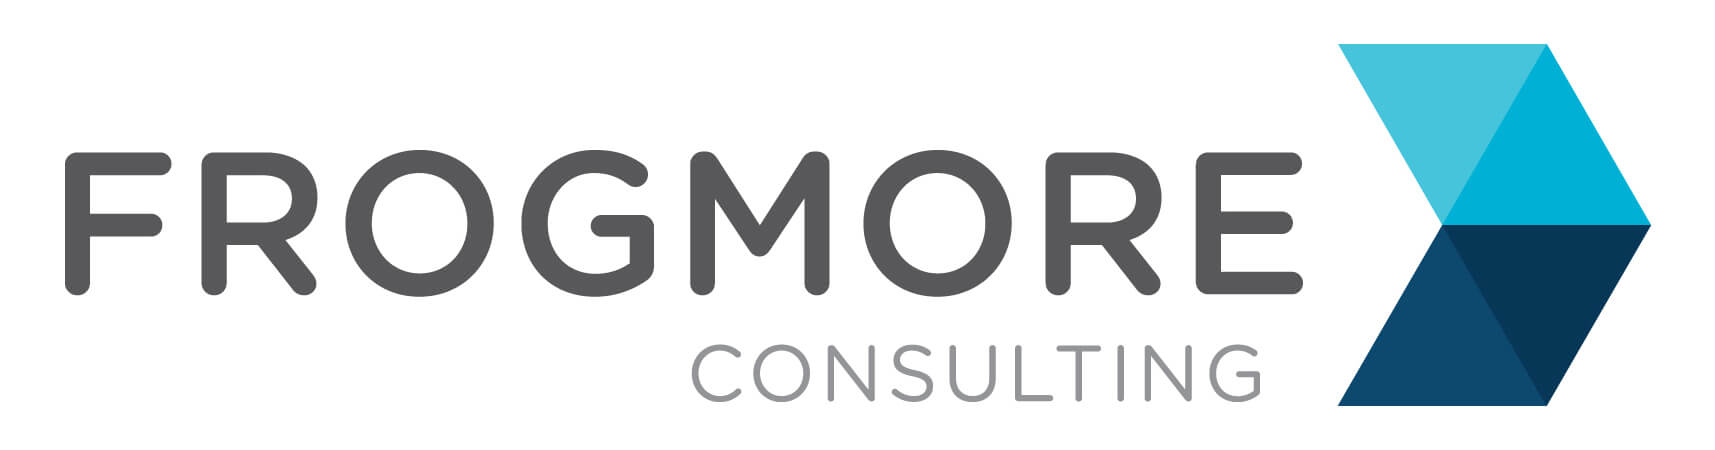 Frogmore Consulting